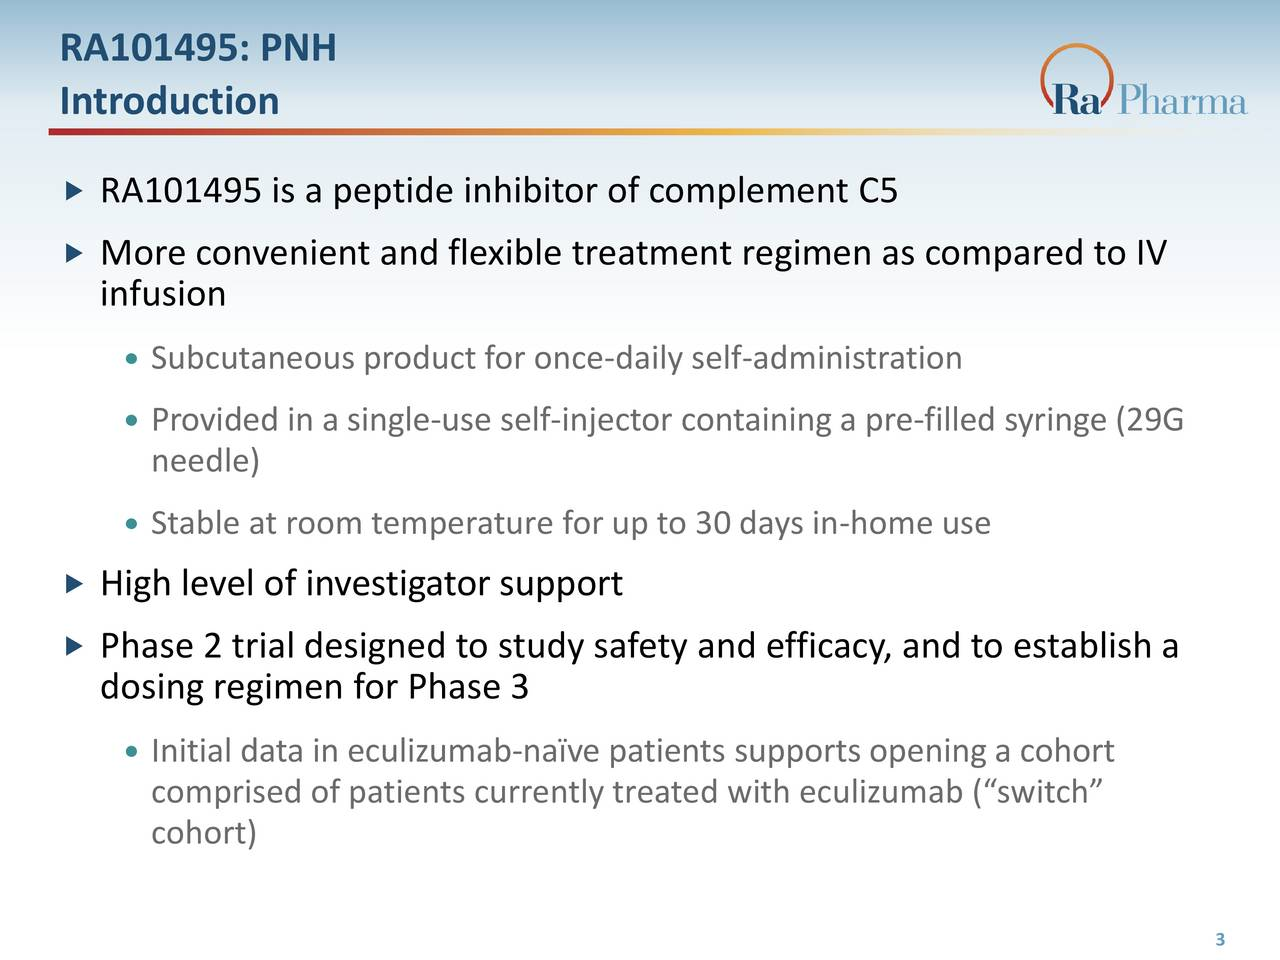 Introduction RA101495 is a peptide inhibitor of complement C5 More convenient and flexible treatment regimen as compared to IV infusion Subcutaneous product for once-daily self-administration Provided in a single-use self-injector containing a pre-filled syringe (29G needle) Stable at room temperature for up to 30 days in-home use High level of investigator support Phase 2 trial designed to study safety and efficacy, and to establish a dosing regimen for Phase 3 Initial data in eculizumab-nave patients supports opening a cohort comprised of patients currently treated with eculizumab (switch cohort)